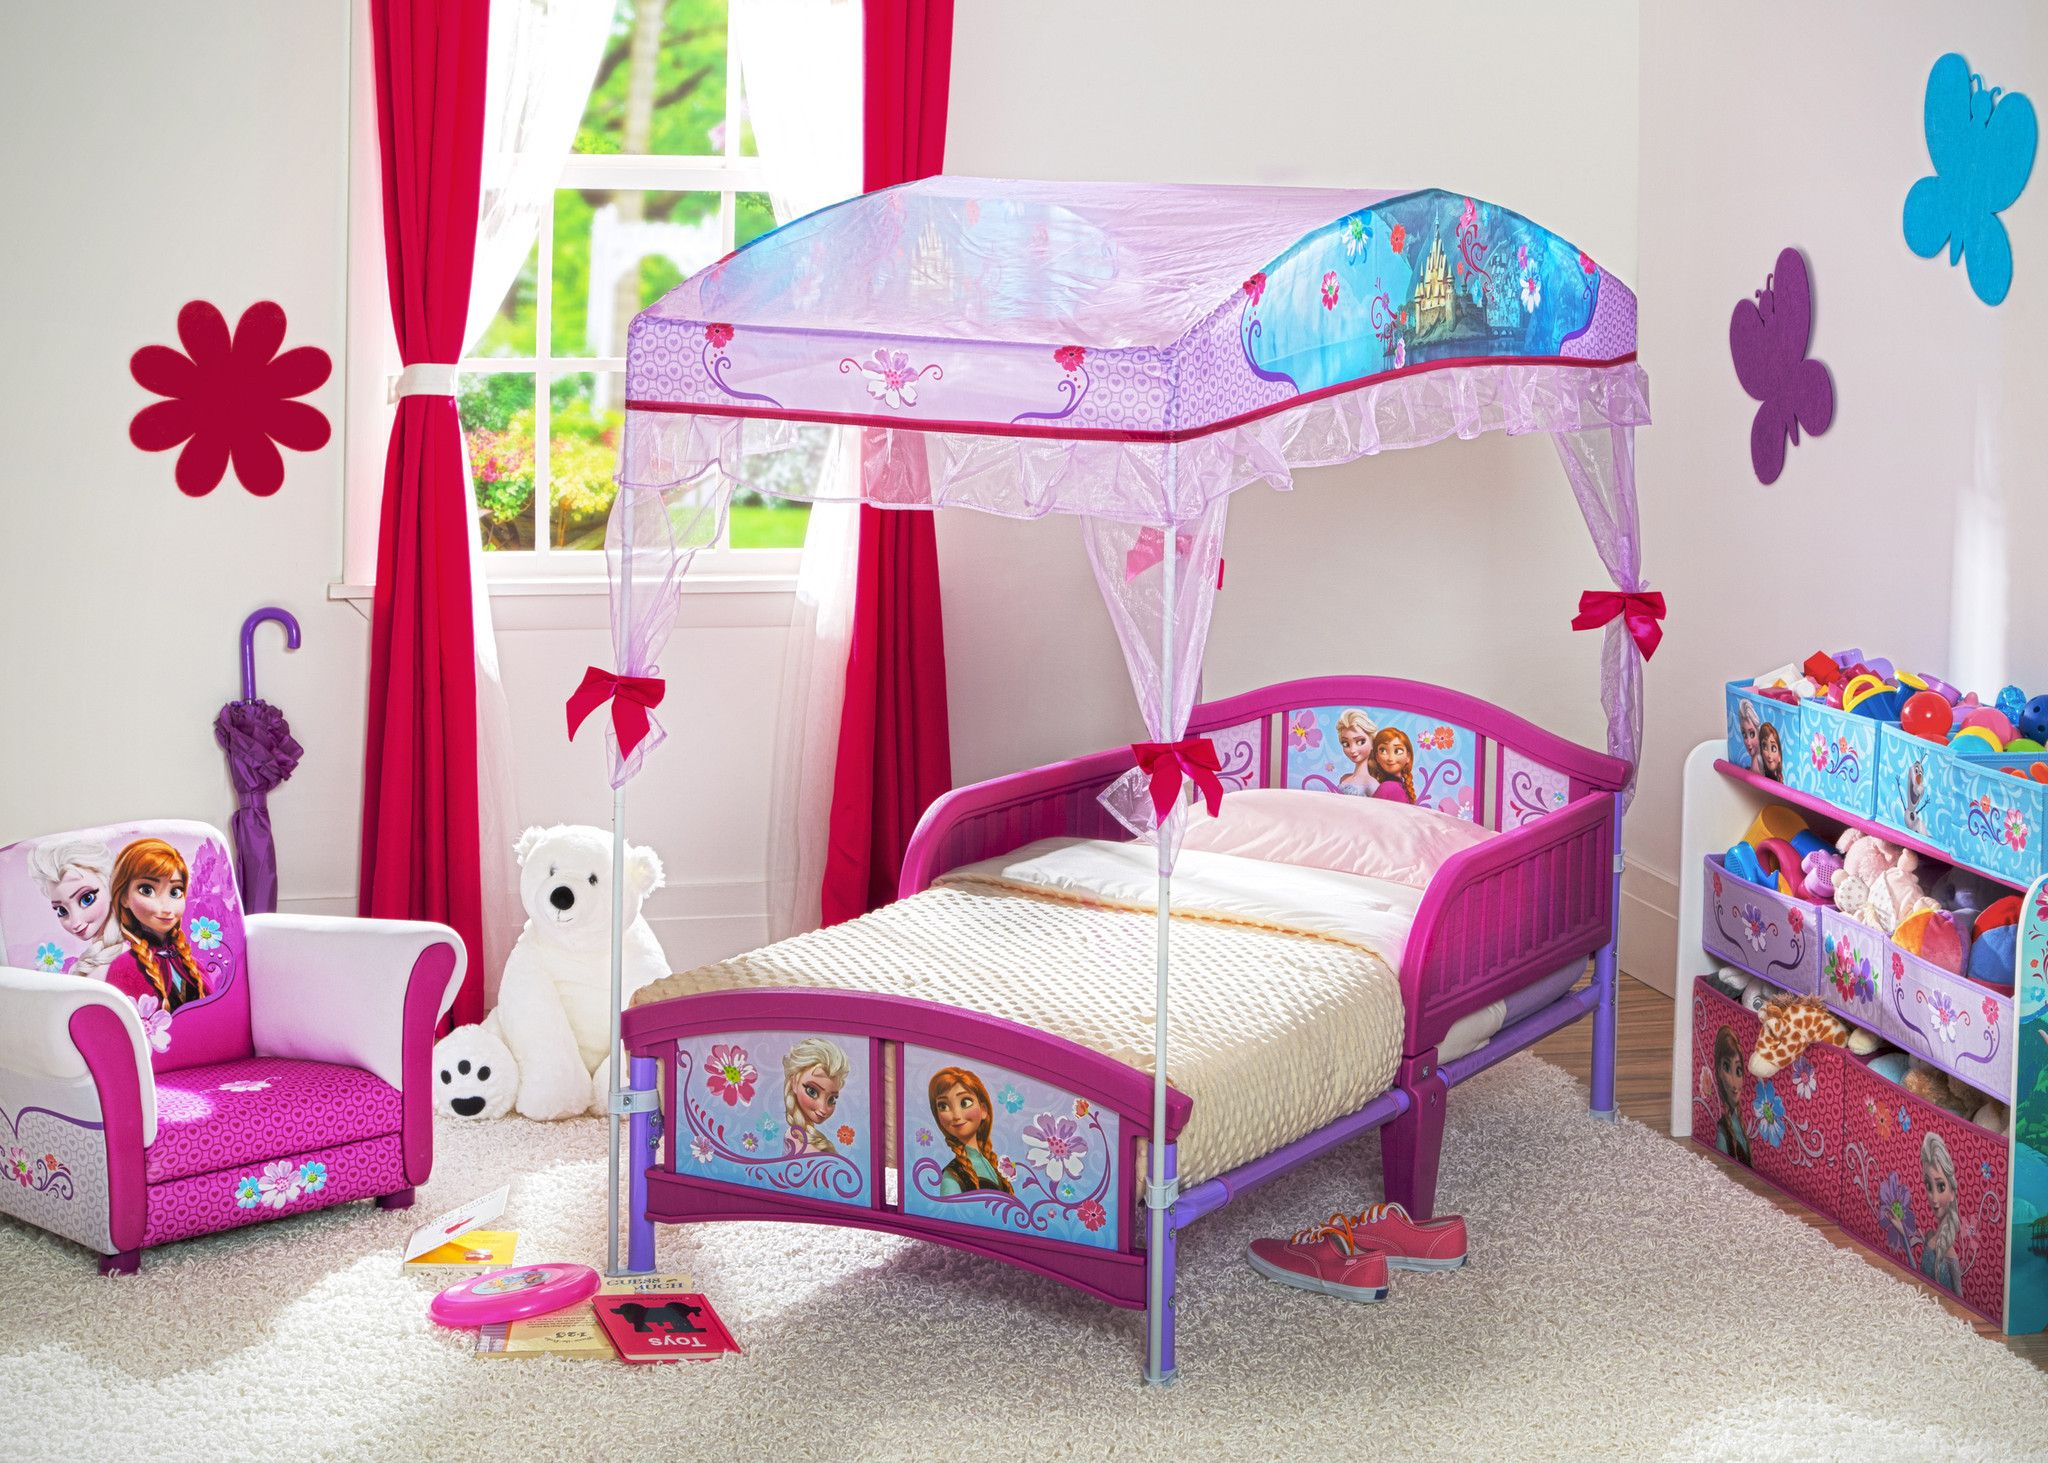 - Frozen Deluxe Multi-Bin Toy Organizer Toddler Canopy Bed, Girls